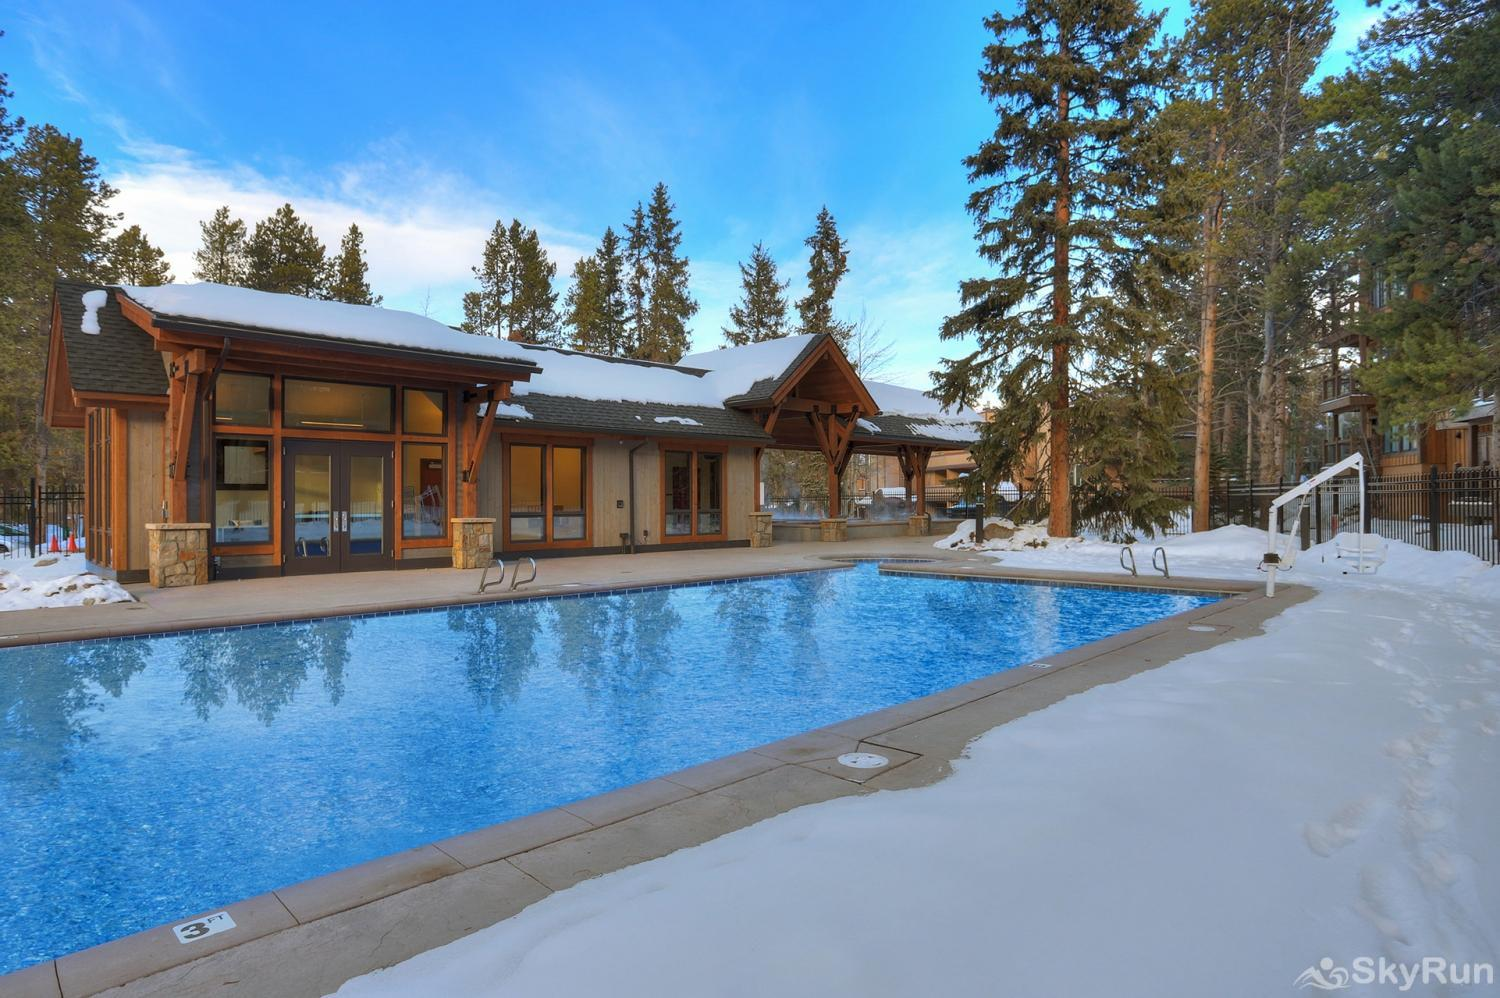 Pine Creek Lodge Columbine Pool Complex fully renovated Fall '18